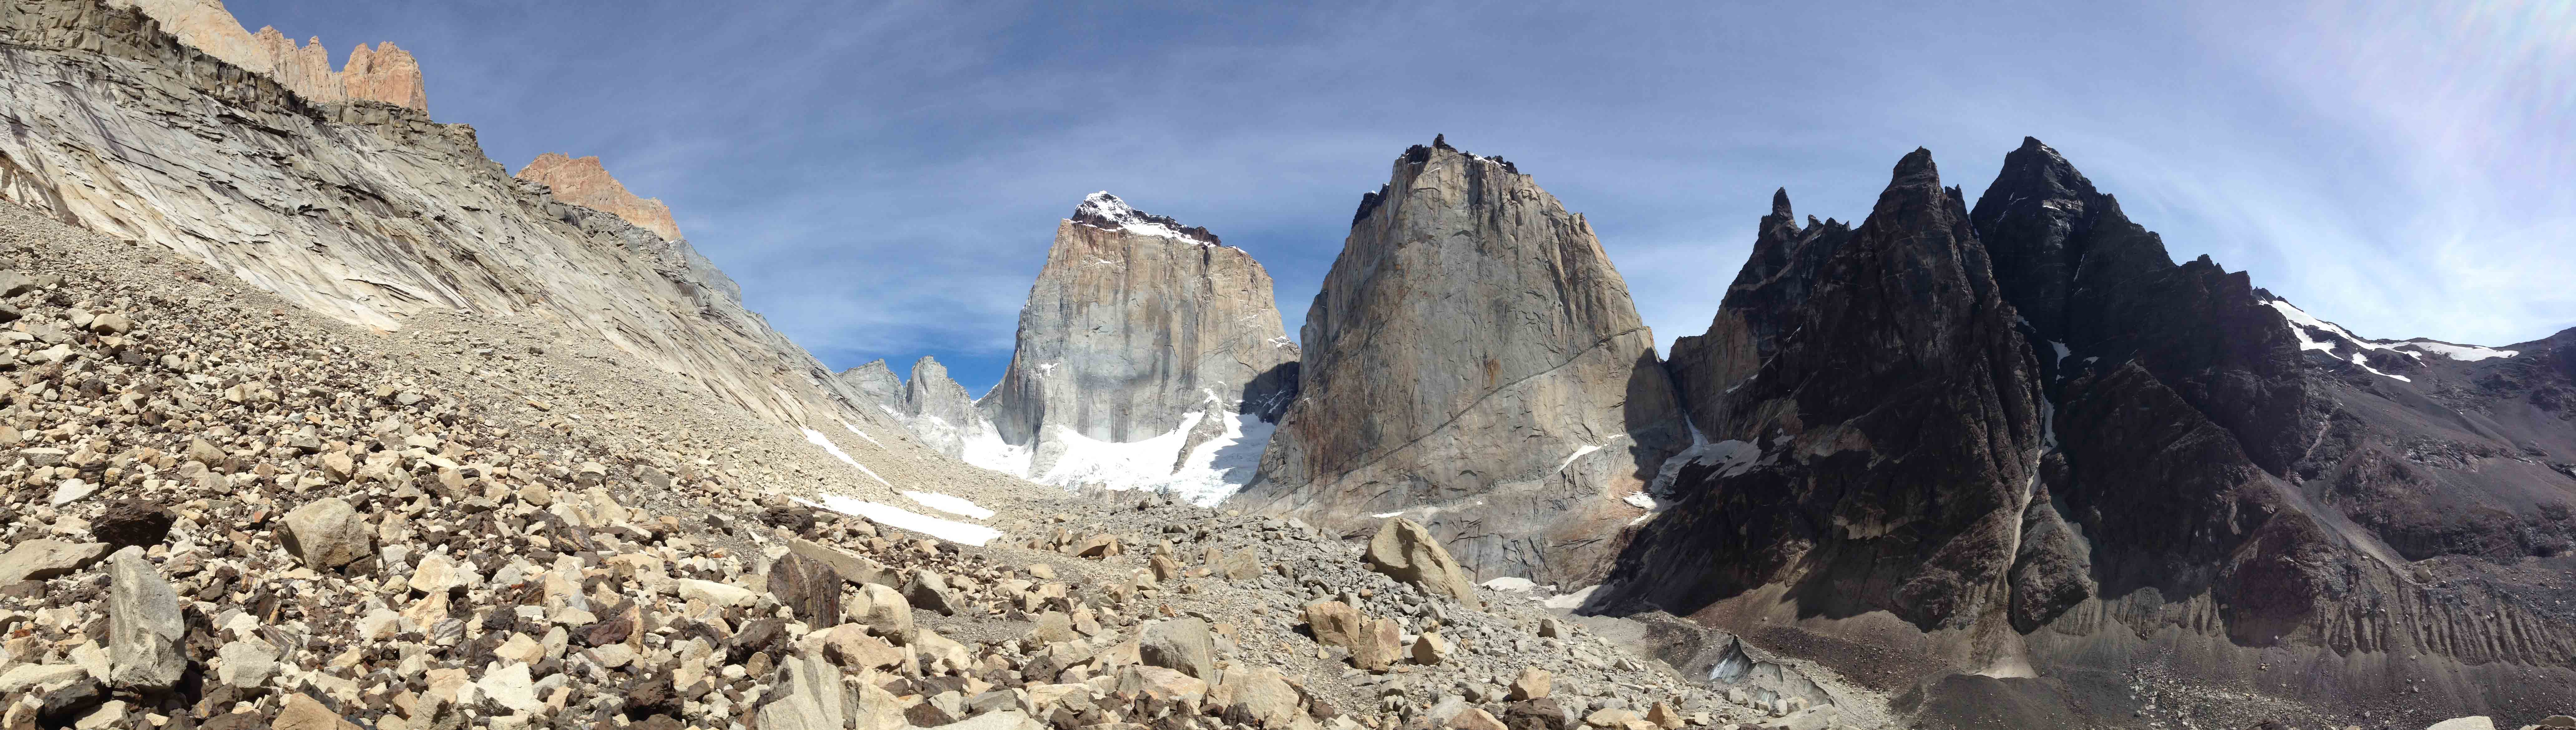 A panorama of the Silence Valley with La Fortaleza and El Escudo in the in the middle (L to R). (Tye Chapman)